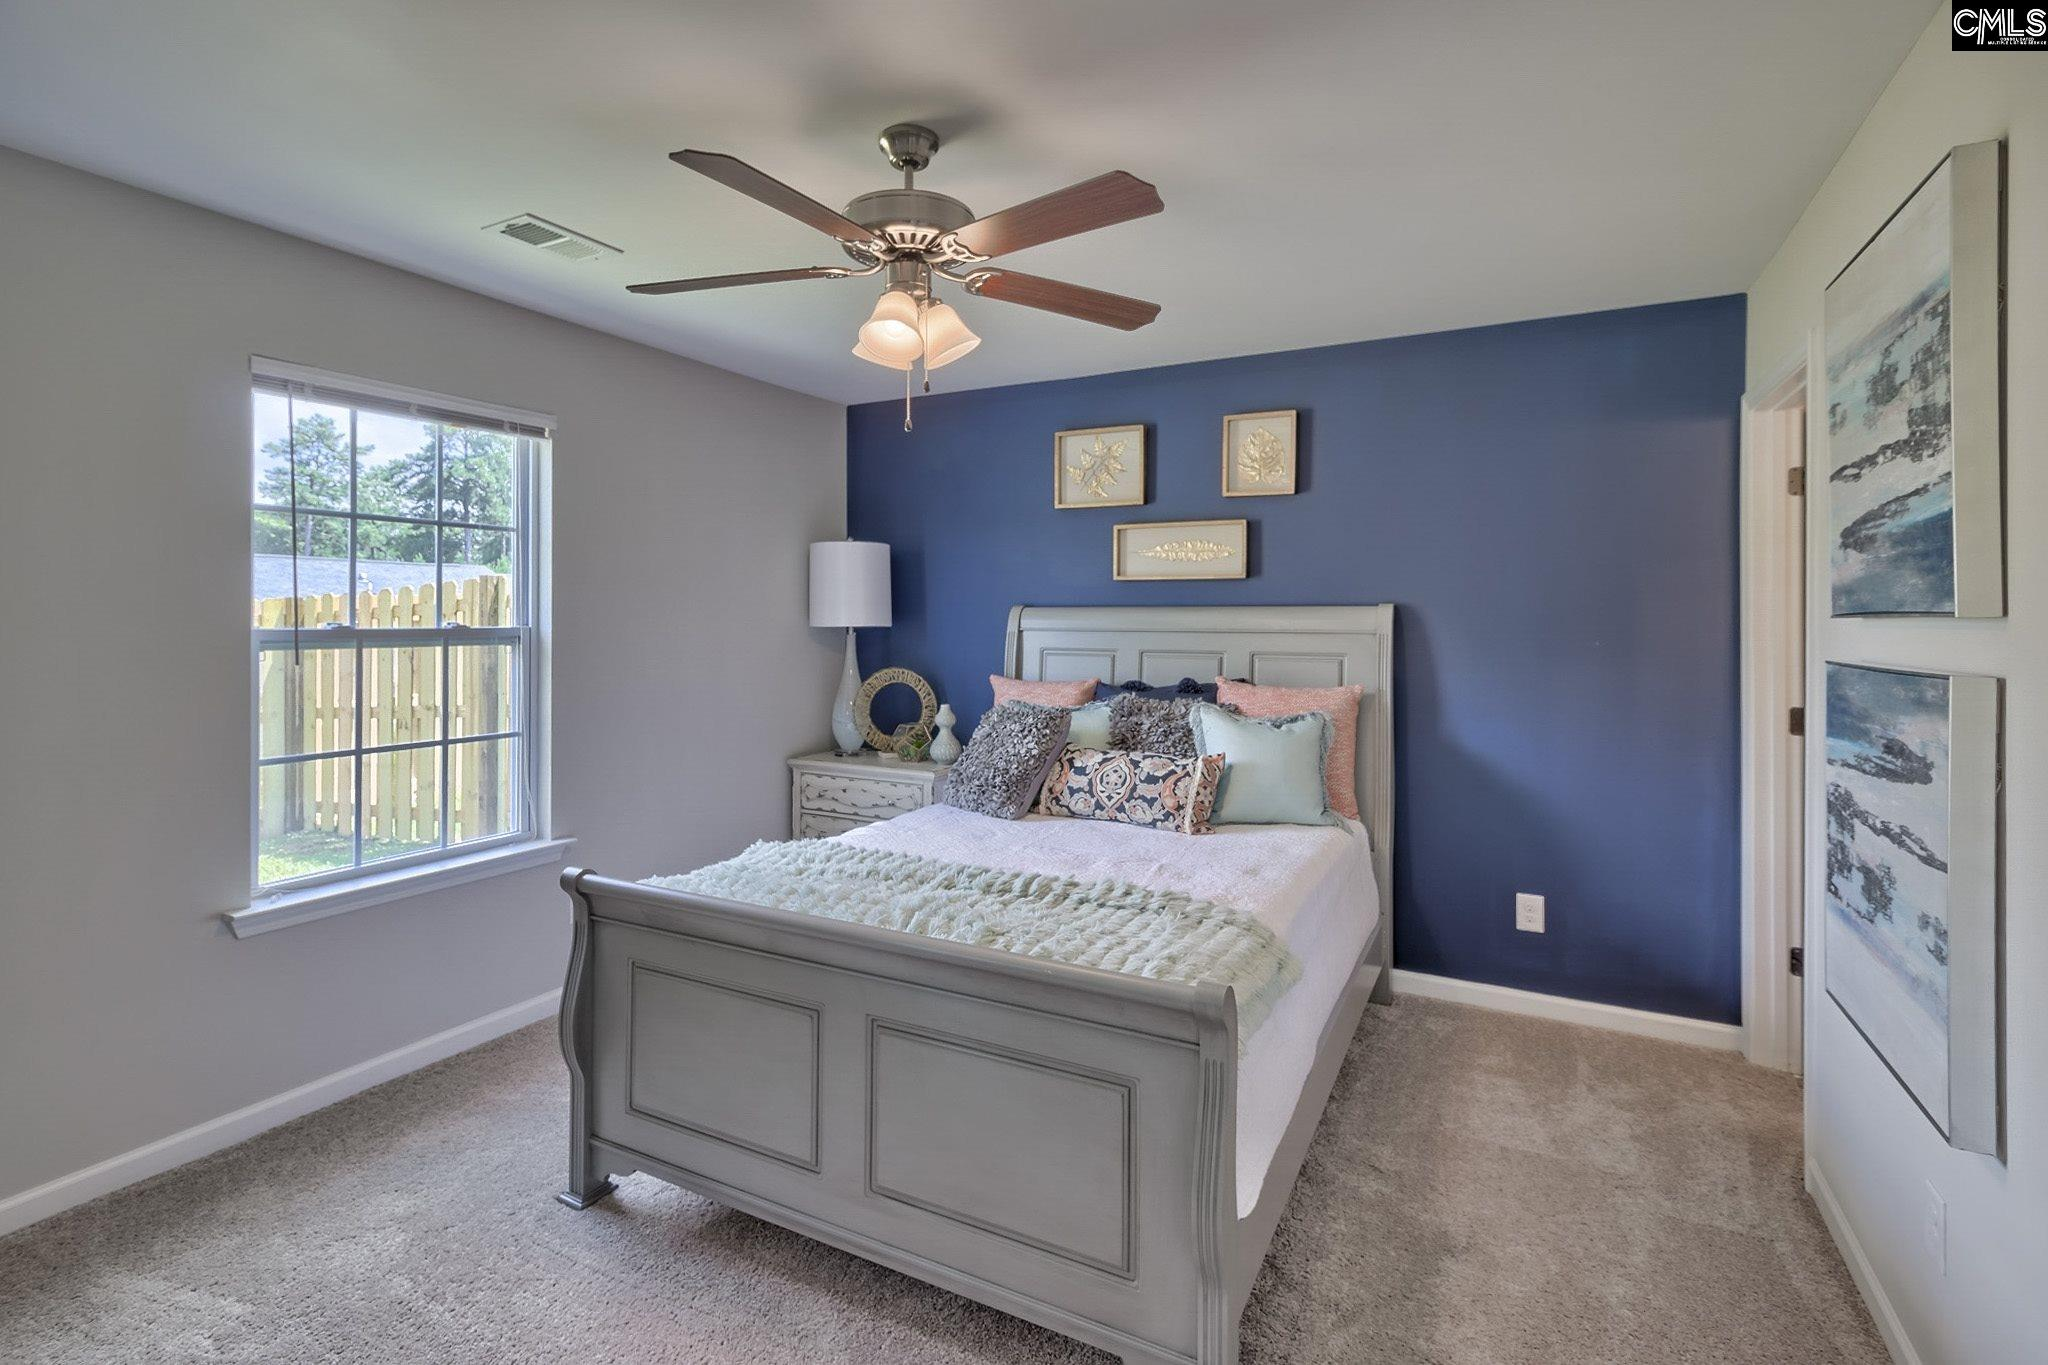 206 Old Steine Lot Drive Columbia, SC 29223